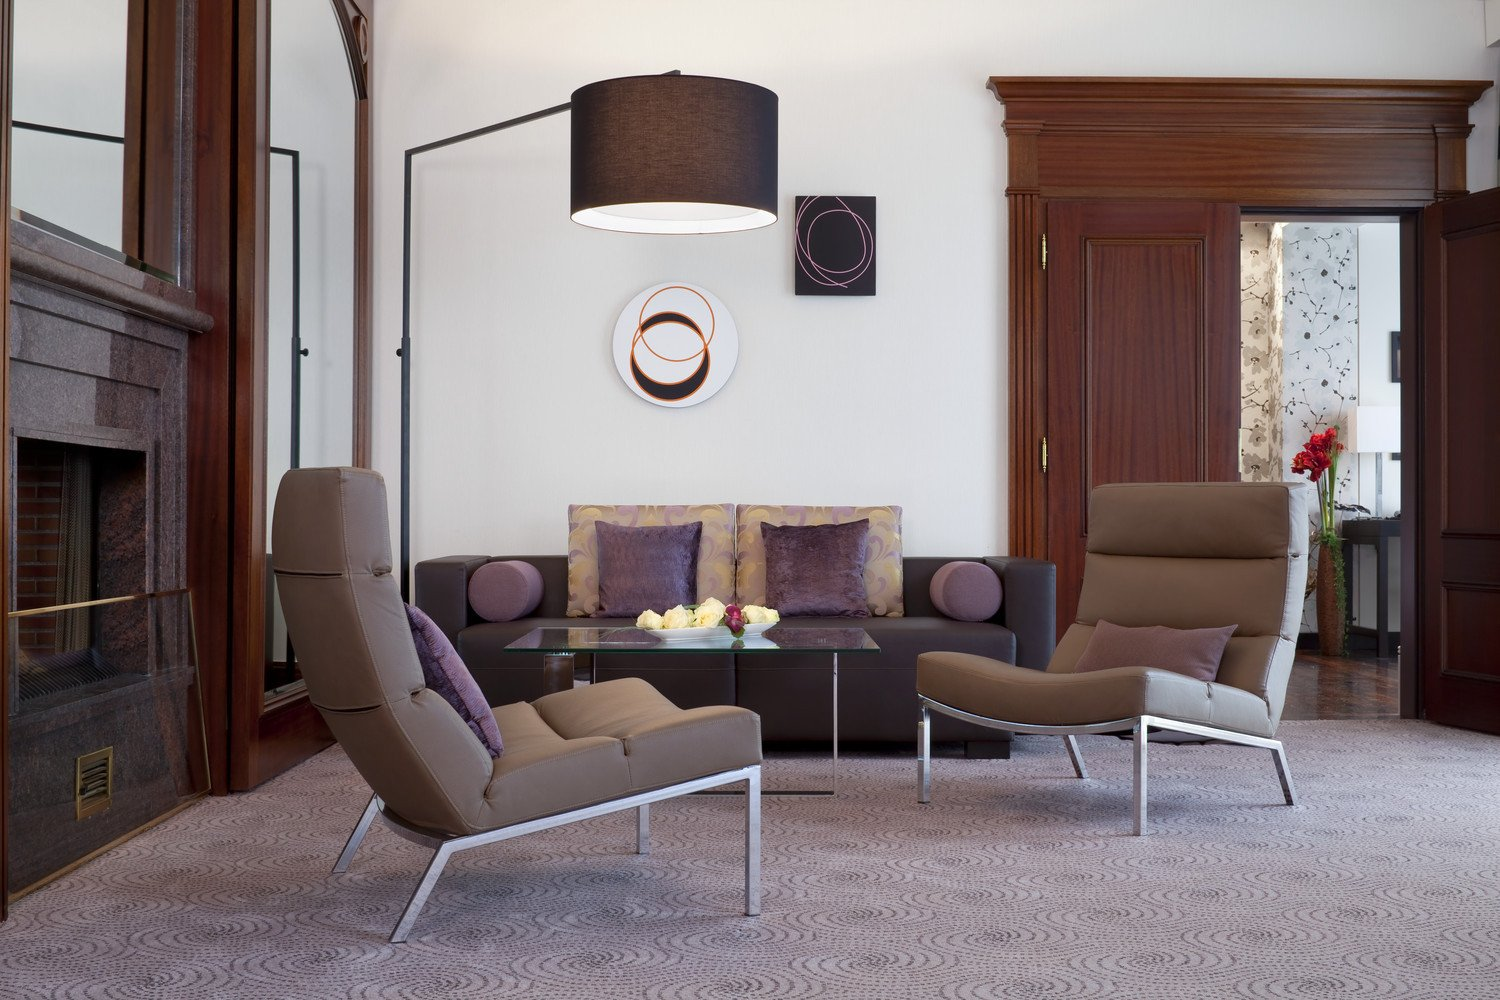 Comfortable Chairs Living Room Luxury fortable Chairs for Living Room